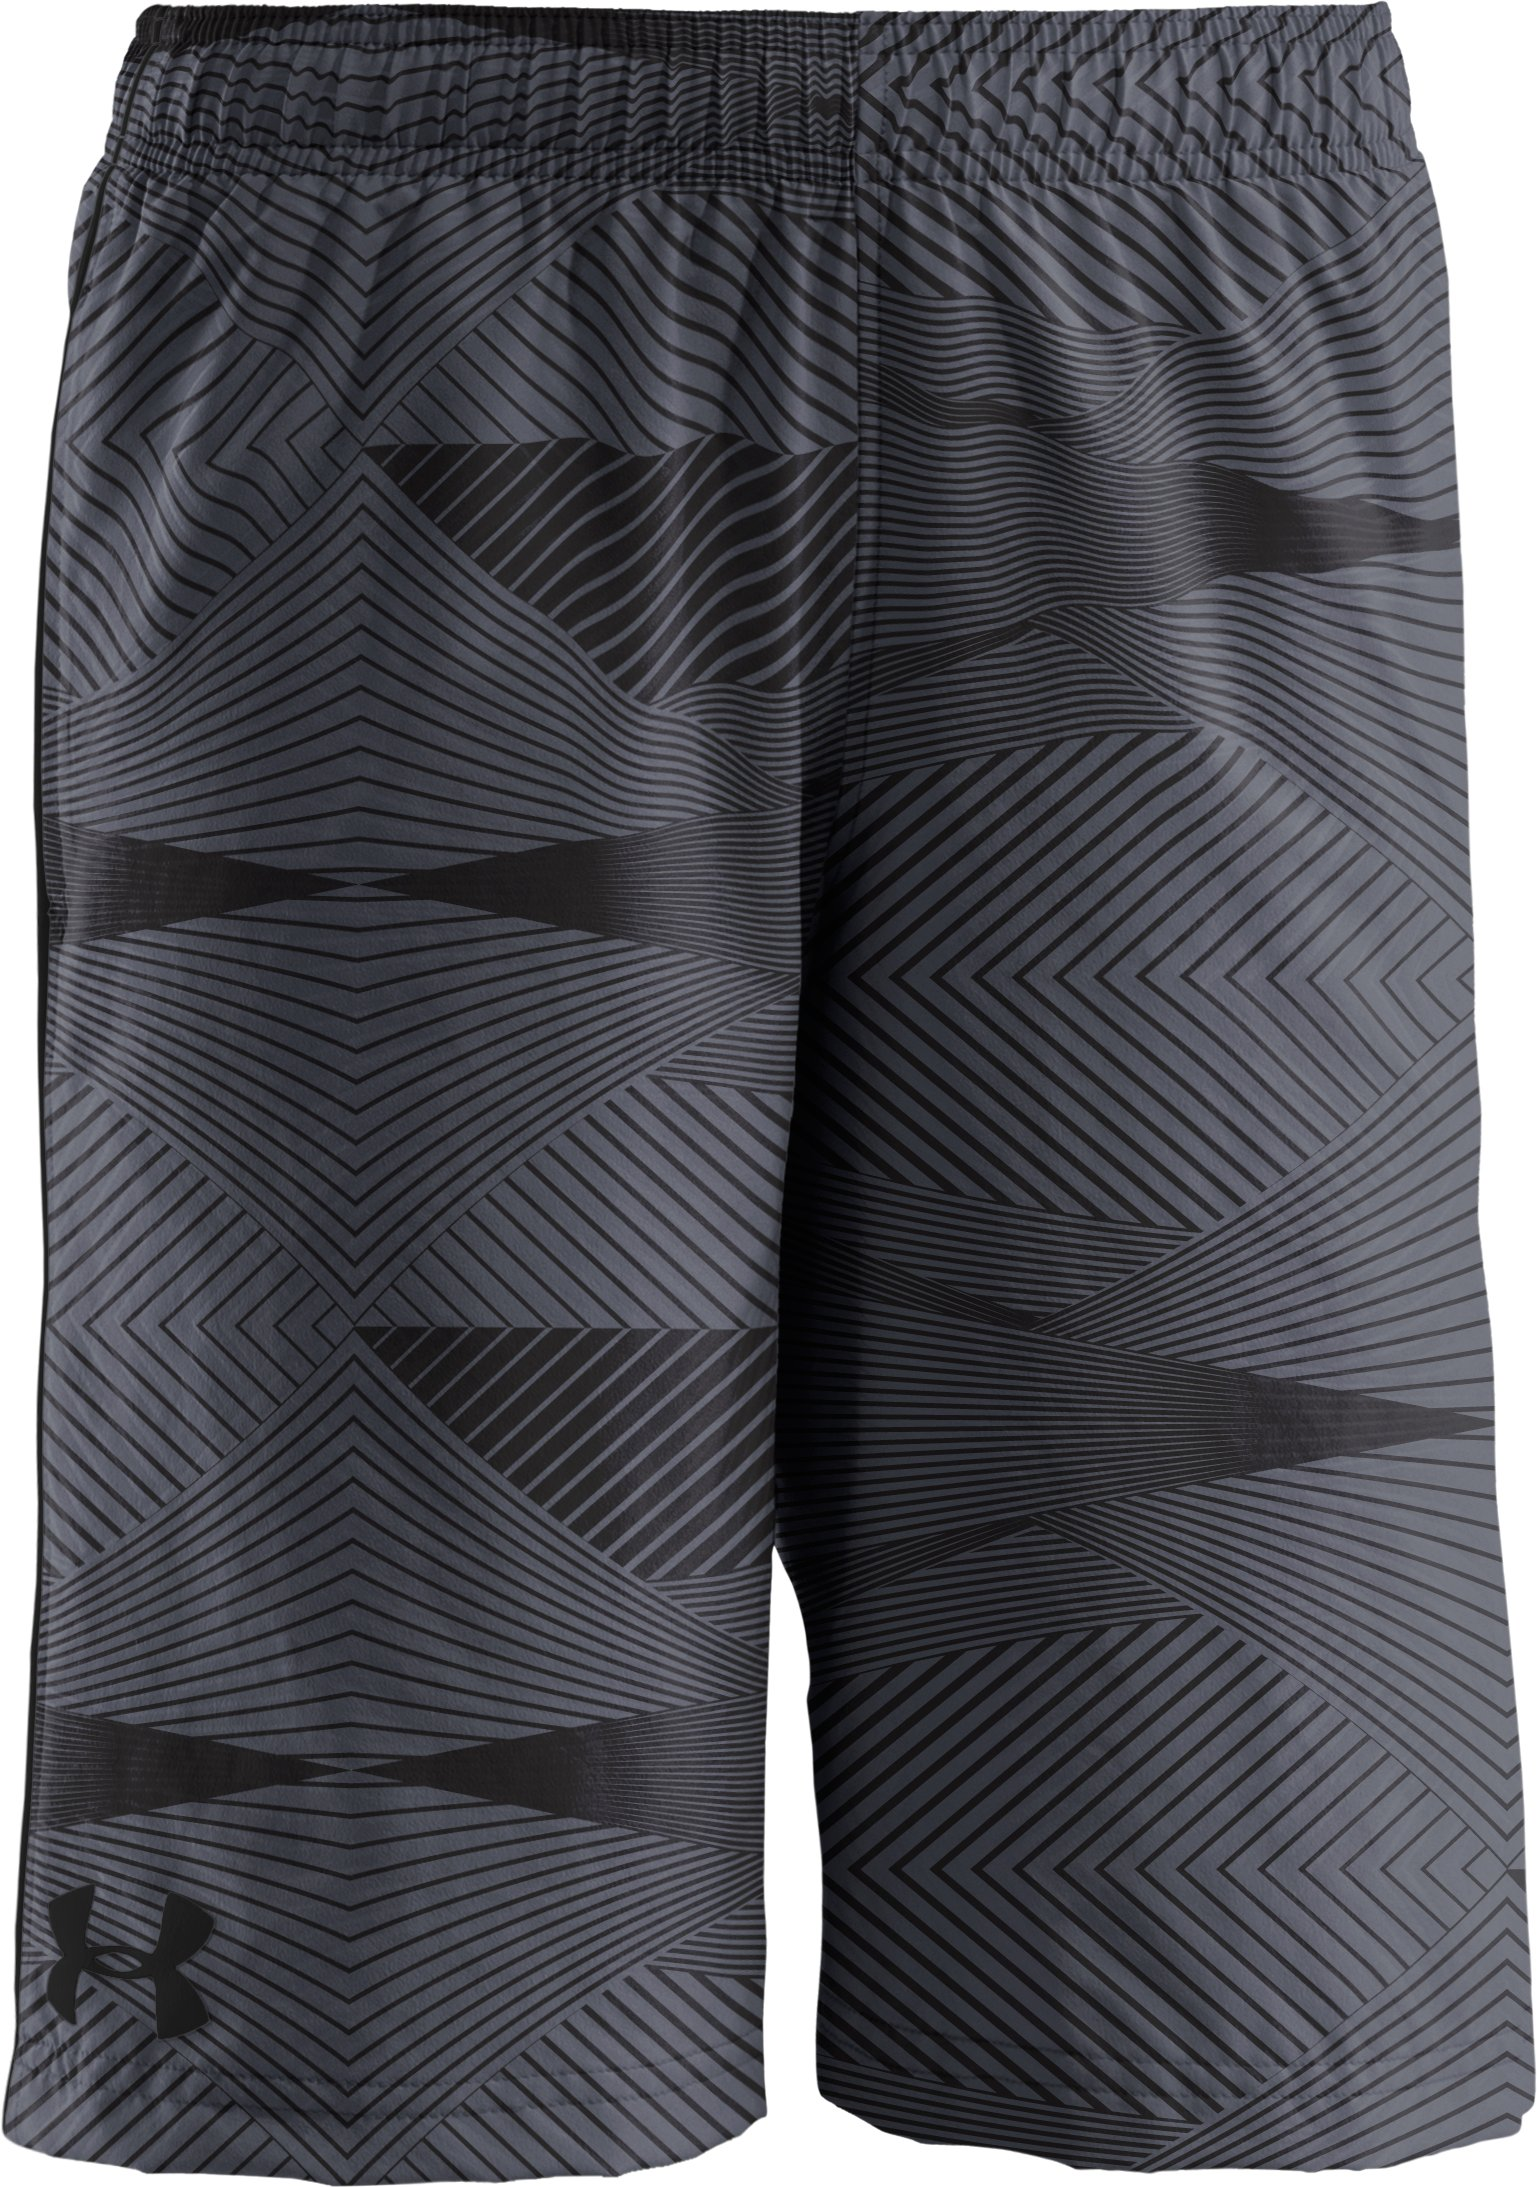 Boys' UA Ripping Shorts, Graphite, zoomed image